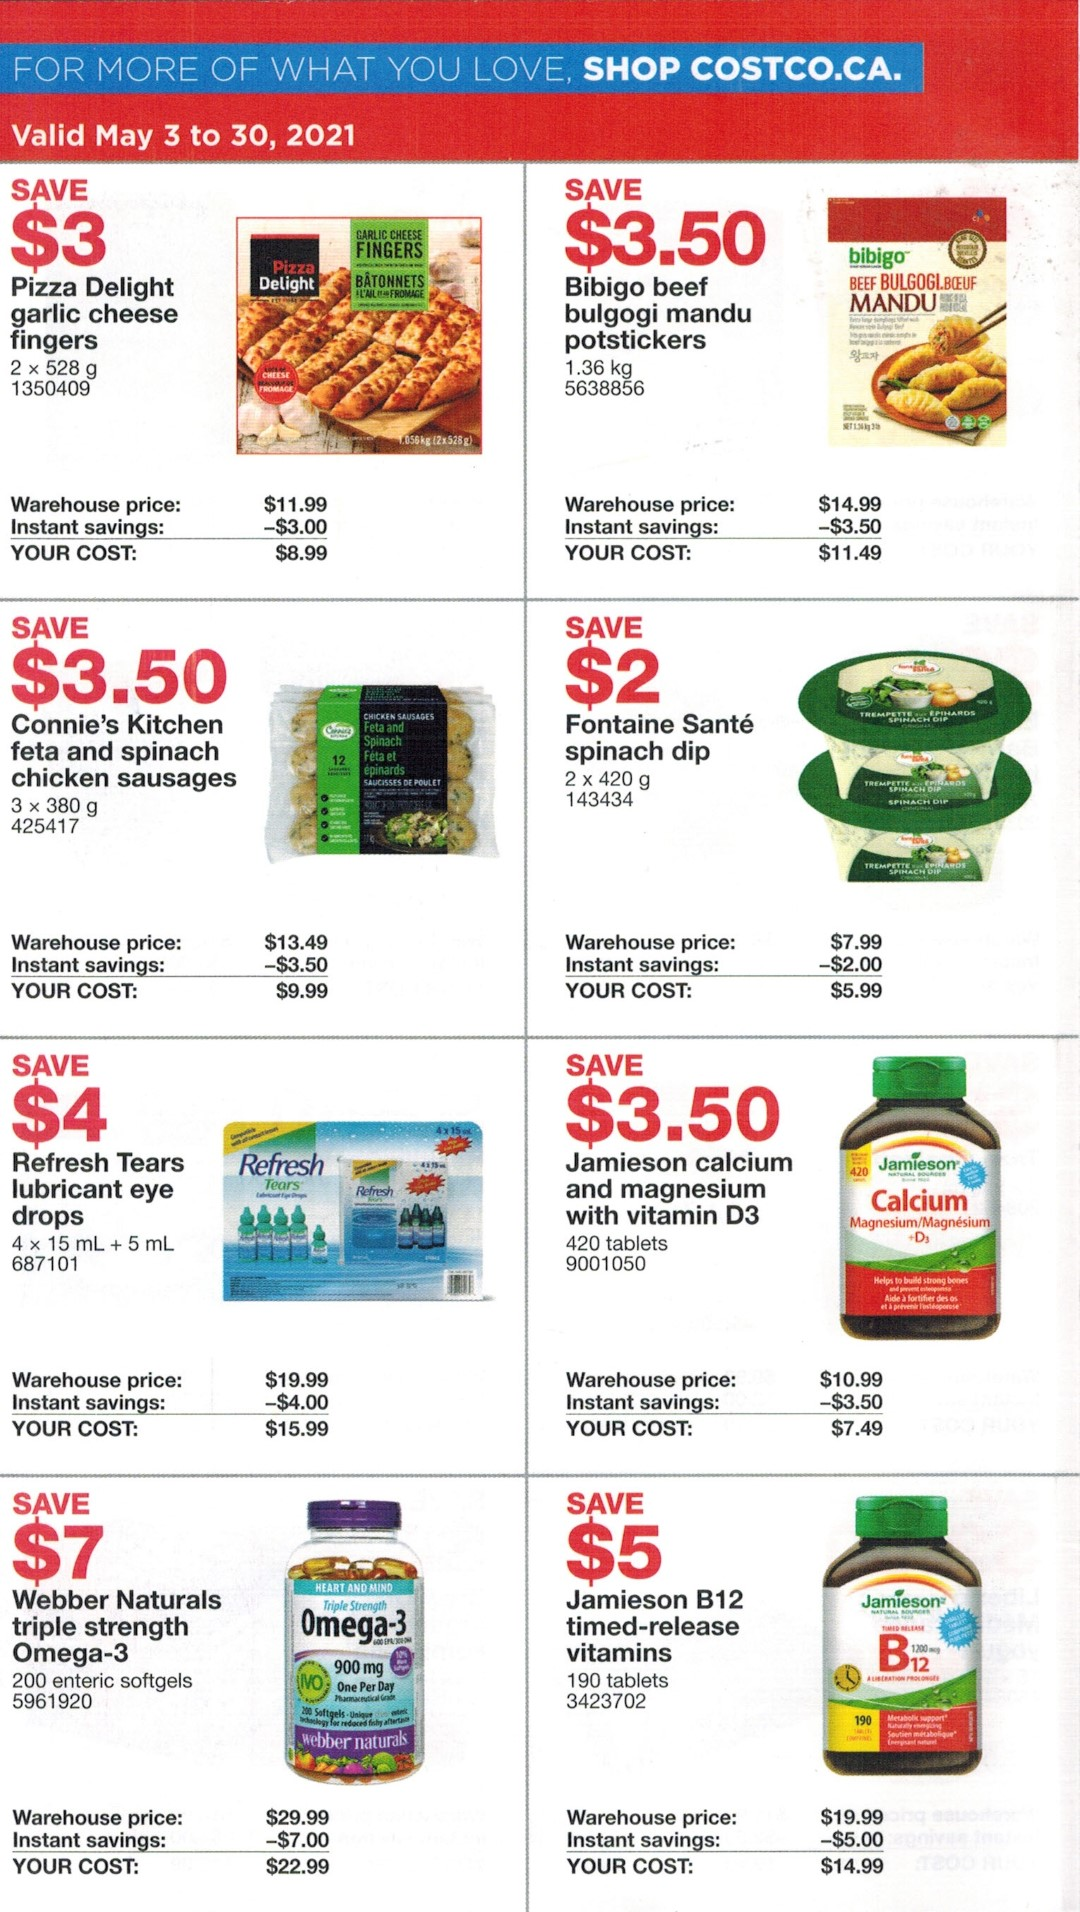 Costco Canada Flyer Preview May 3rd - 30th 2021